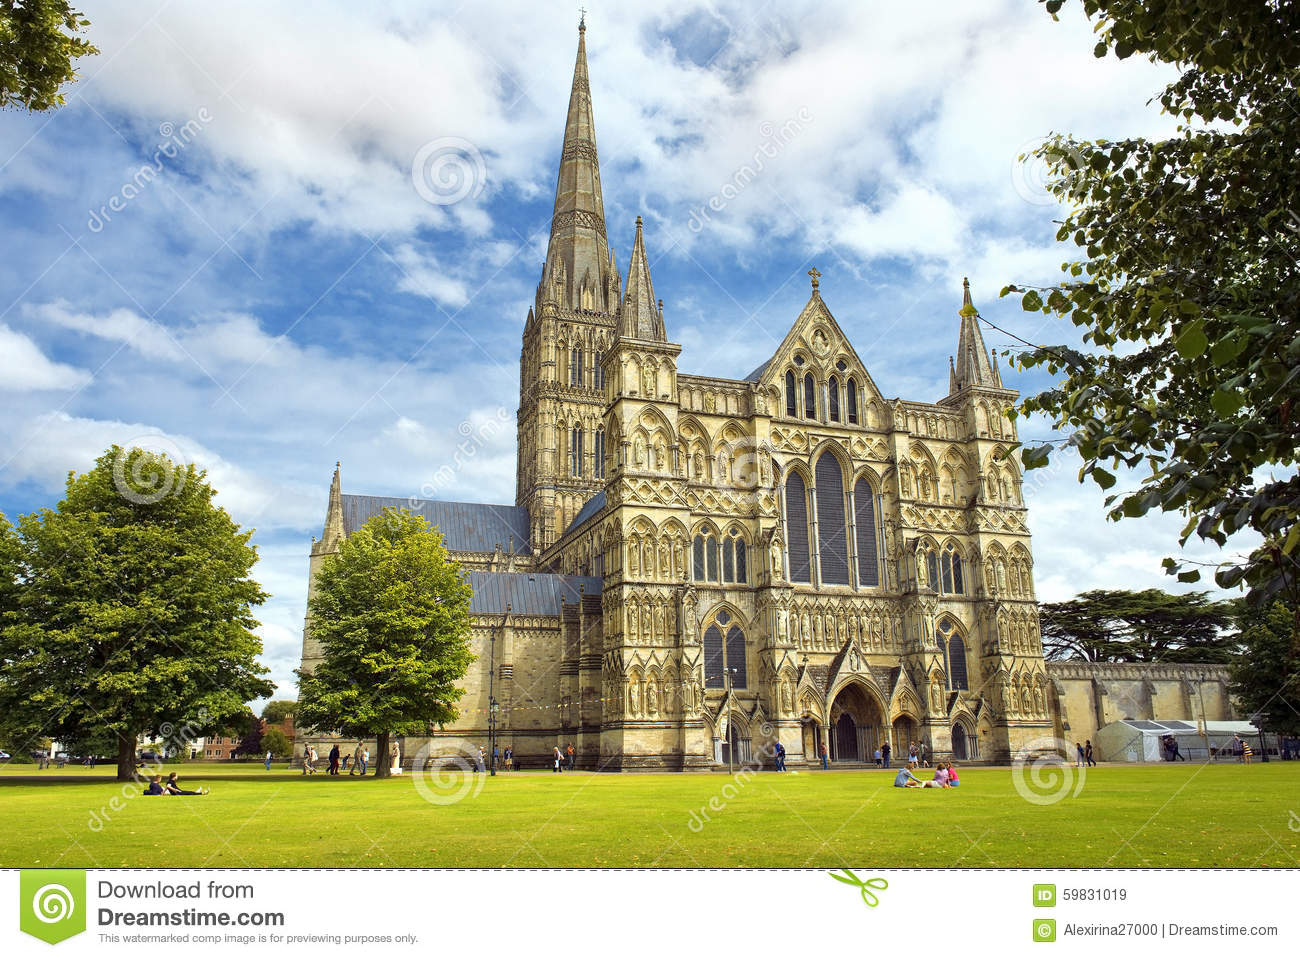 Salisbury United Kingdom  city images : SALISBURY, UNITED KINGDOM August 03, 2015: Salisbury Cathedral and ...